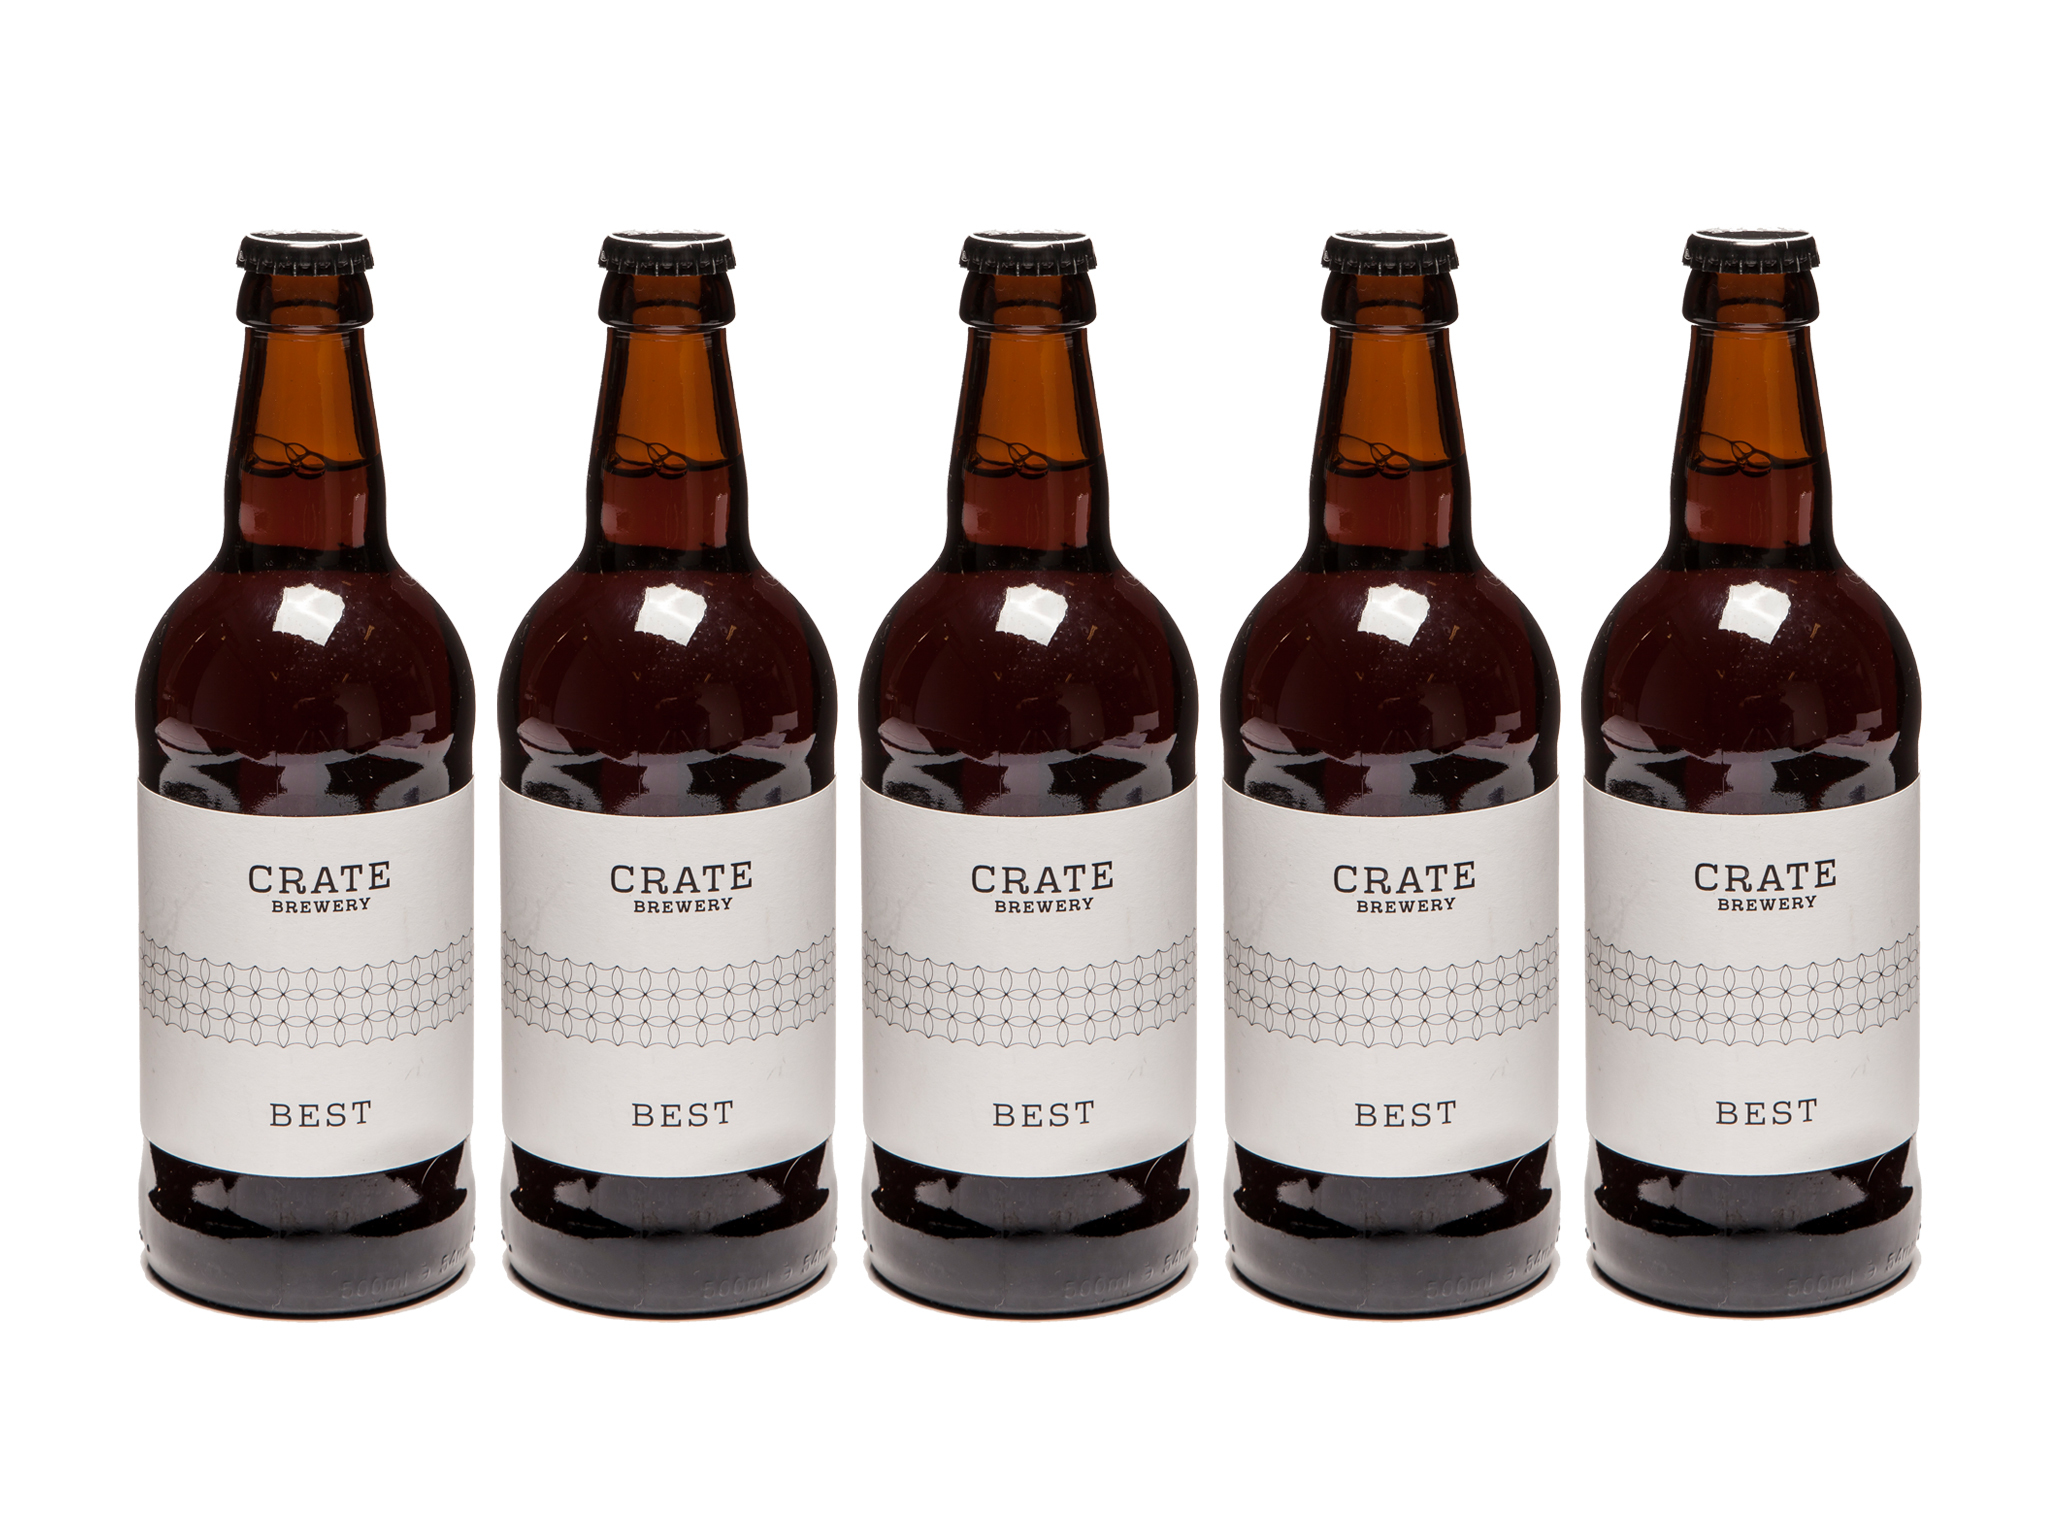 London's best craft beer, Crate Brewery Best